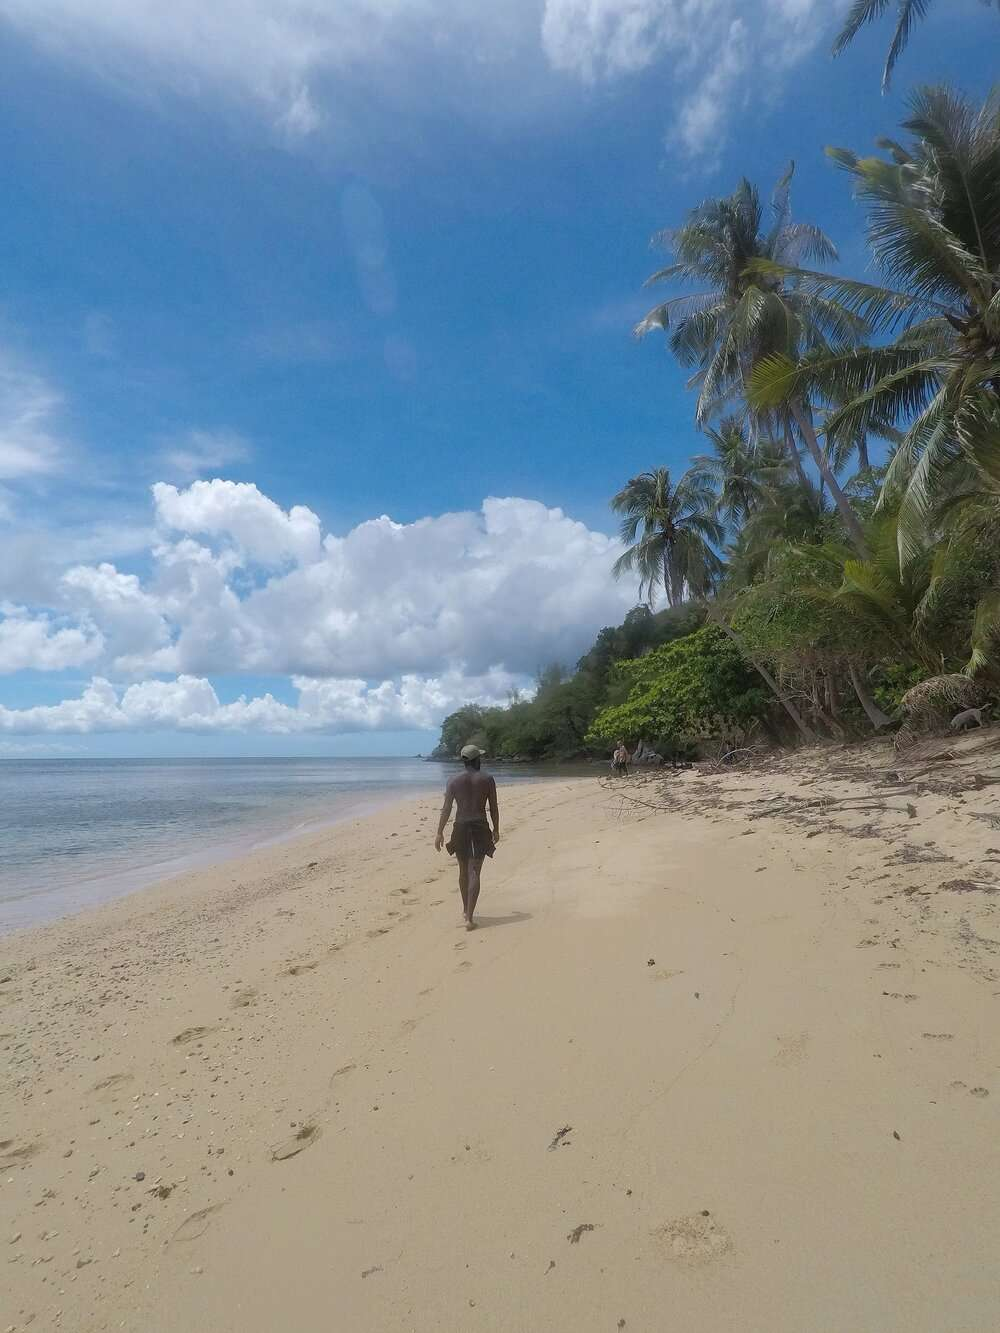 Man walking down the beach in the Philippines